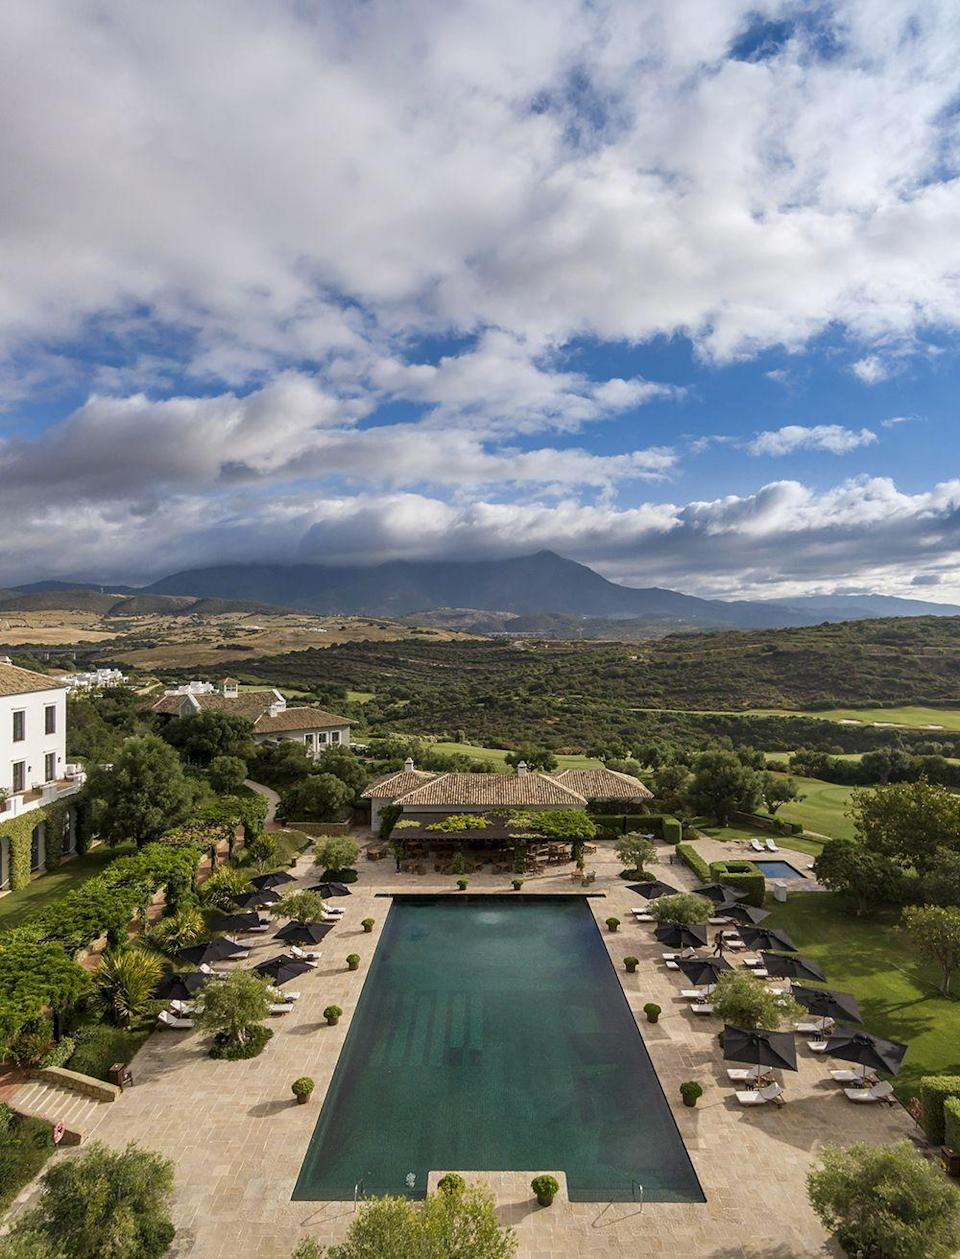 """<p>There are actually four swimming pools on this 532-acre estate, which also houses a 67-suite<a href=""""http://www.fincacortesin.com"""" rel=""""nofollow noopener"""" target=""""_blank"""" data-ylk=""""slk:luxury hotel"""" class=""""link rapid-noclick-resp""""> luxury hotel</a>, villas for rental, championship golf course, amazing spa, Michelin-star dining and a Beach Club. Skegness this is not.</p>"""